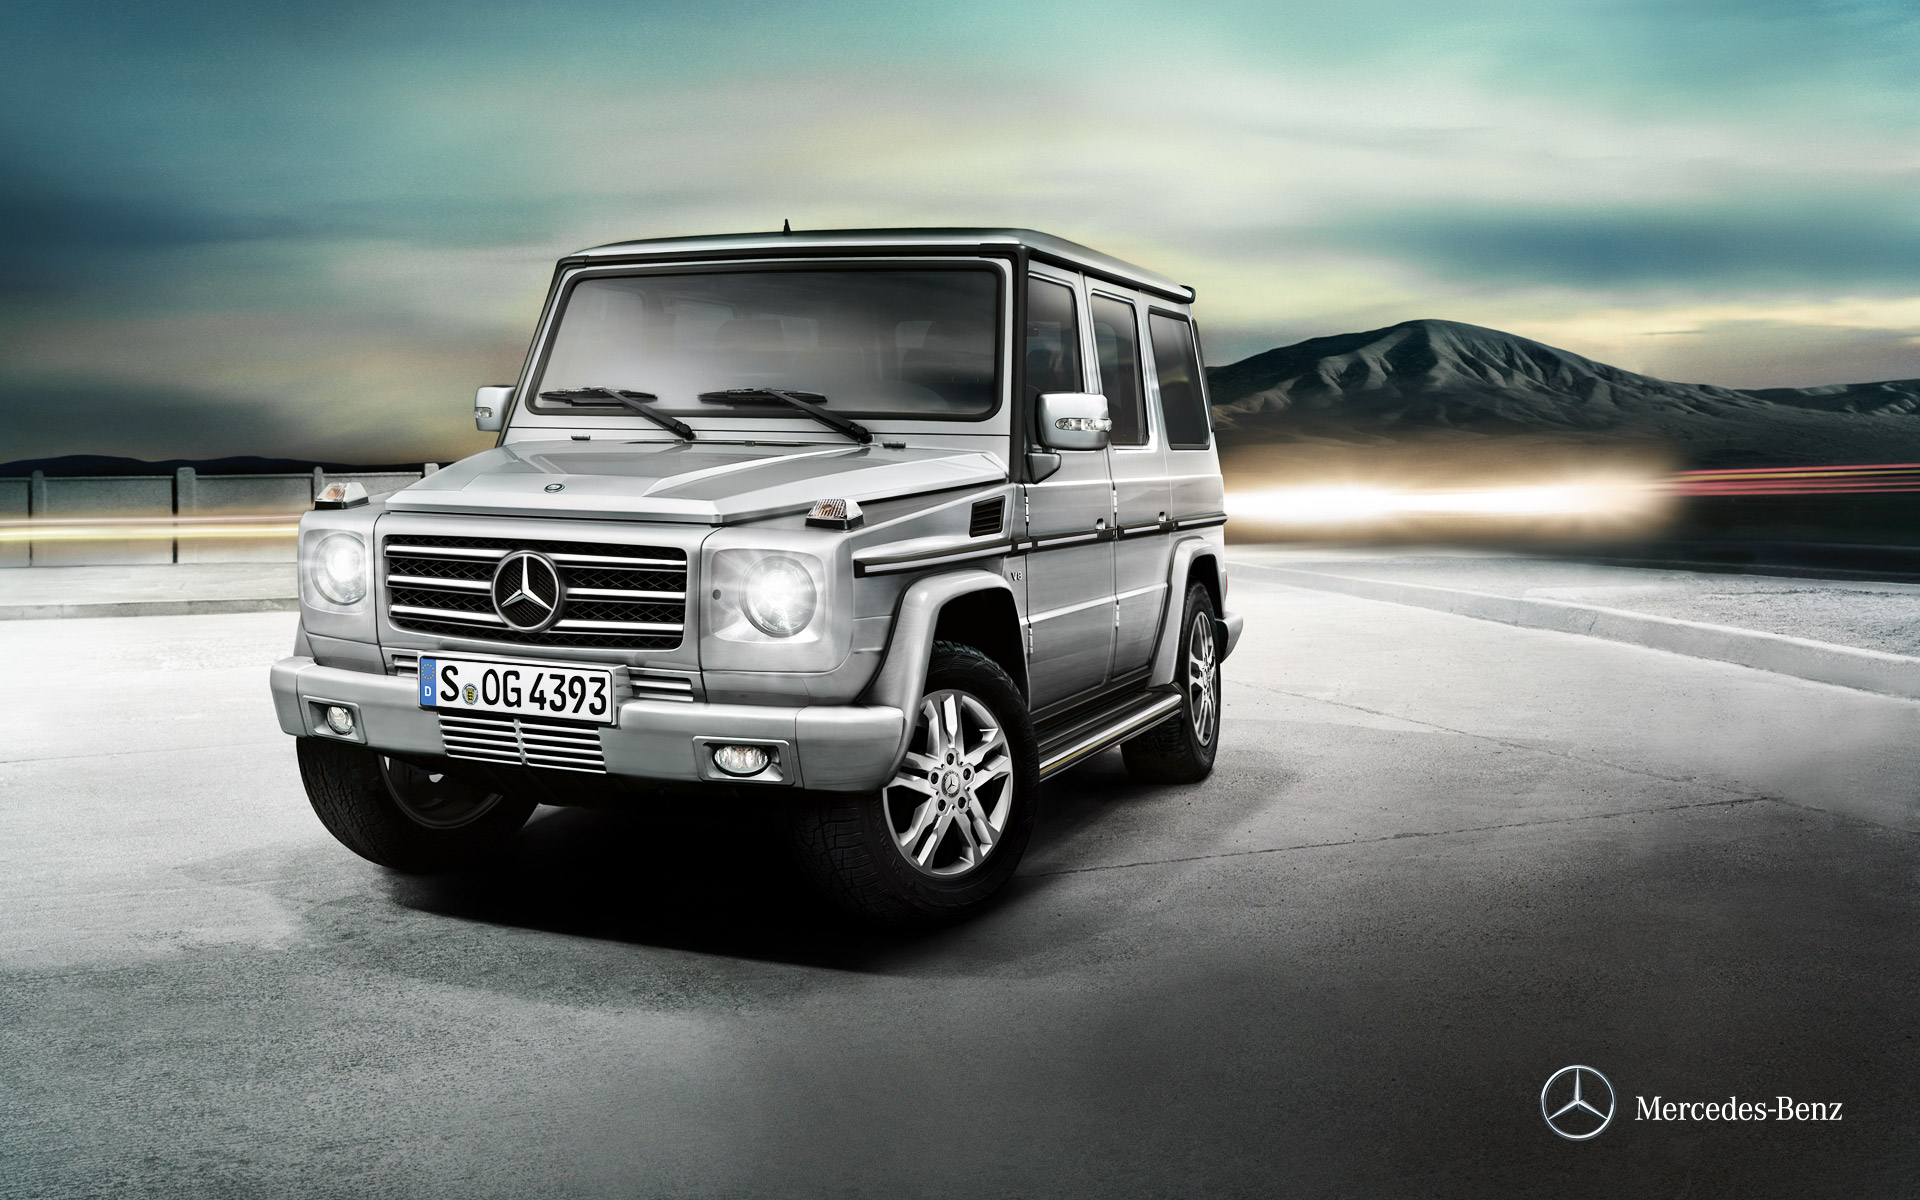 Mercedes Benz G Class 2012 G 500 In Uae New Car Prices